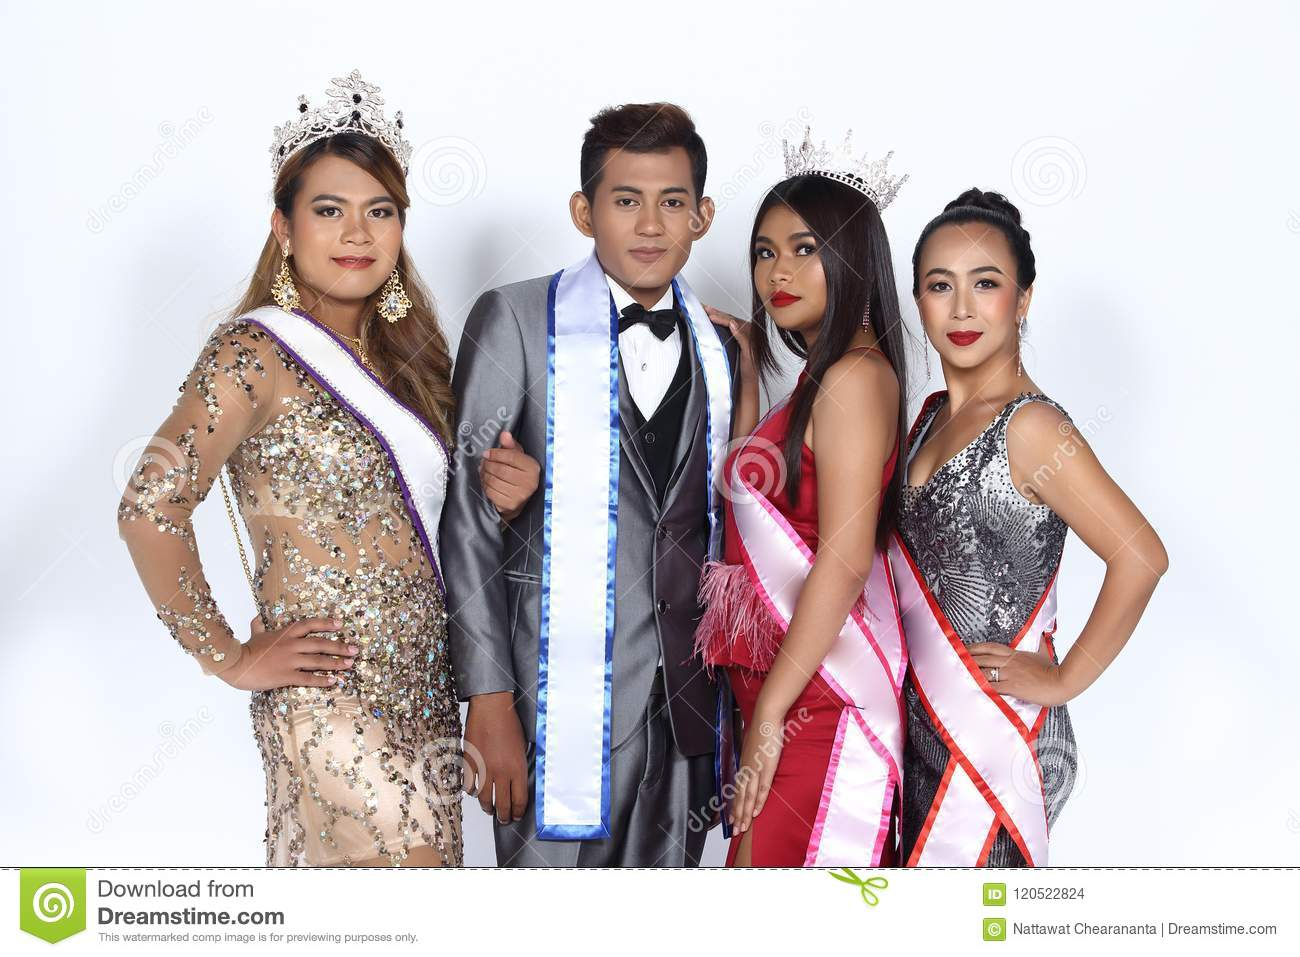 0a49c5ab92 Group of four Beauty Pageant in formal dress, evening gown, wedding  business suit with sash crown. Happy together with smiling half body many  people, ...